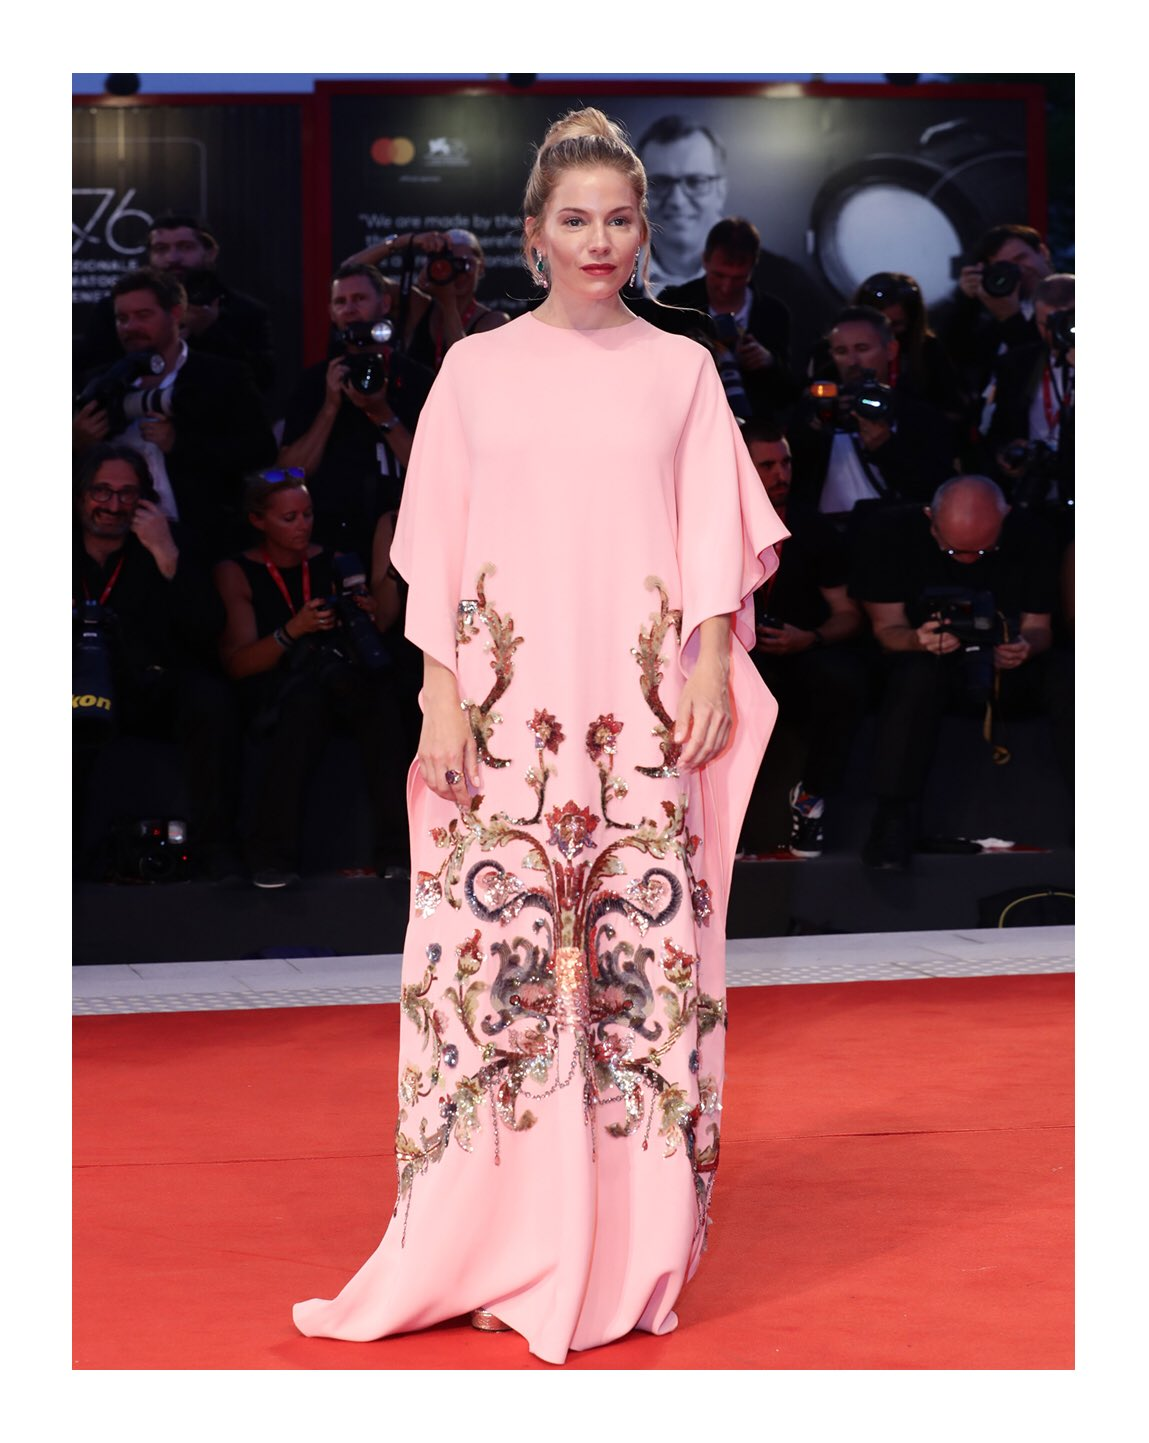 Recipient of the Kinéo International Award at the 76th Venice Film Festival, #SiennaMiller  wore a #Gucci silk cady embroidered gown with metallic leather sandals.  #AlessandroMichele #BiennaleCinema2019 #Venezia76 https://t.co/Jas785Hucb